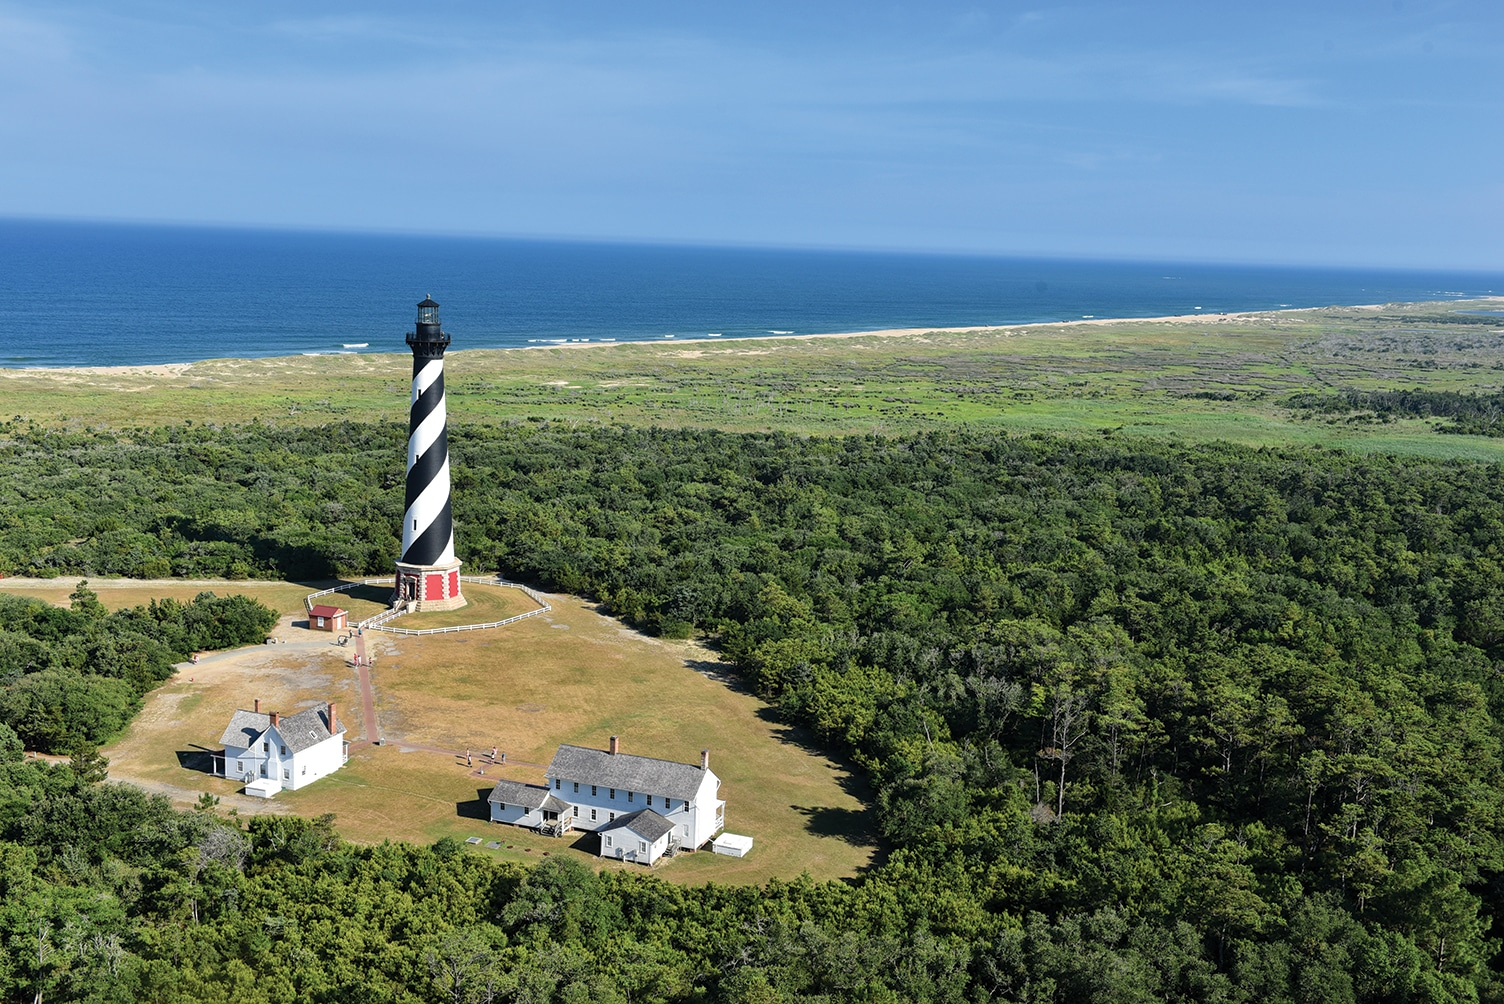 Aerial view of black and white swirl designed brick lighthouse in North Carolina